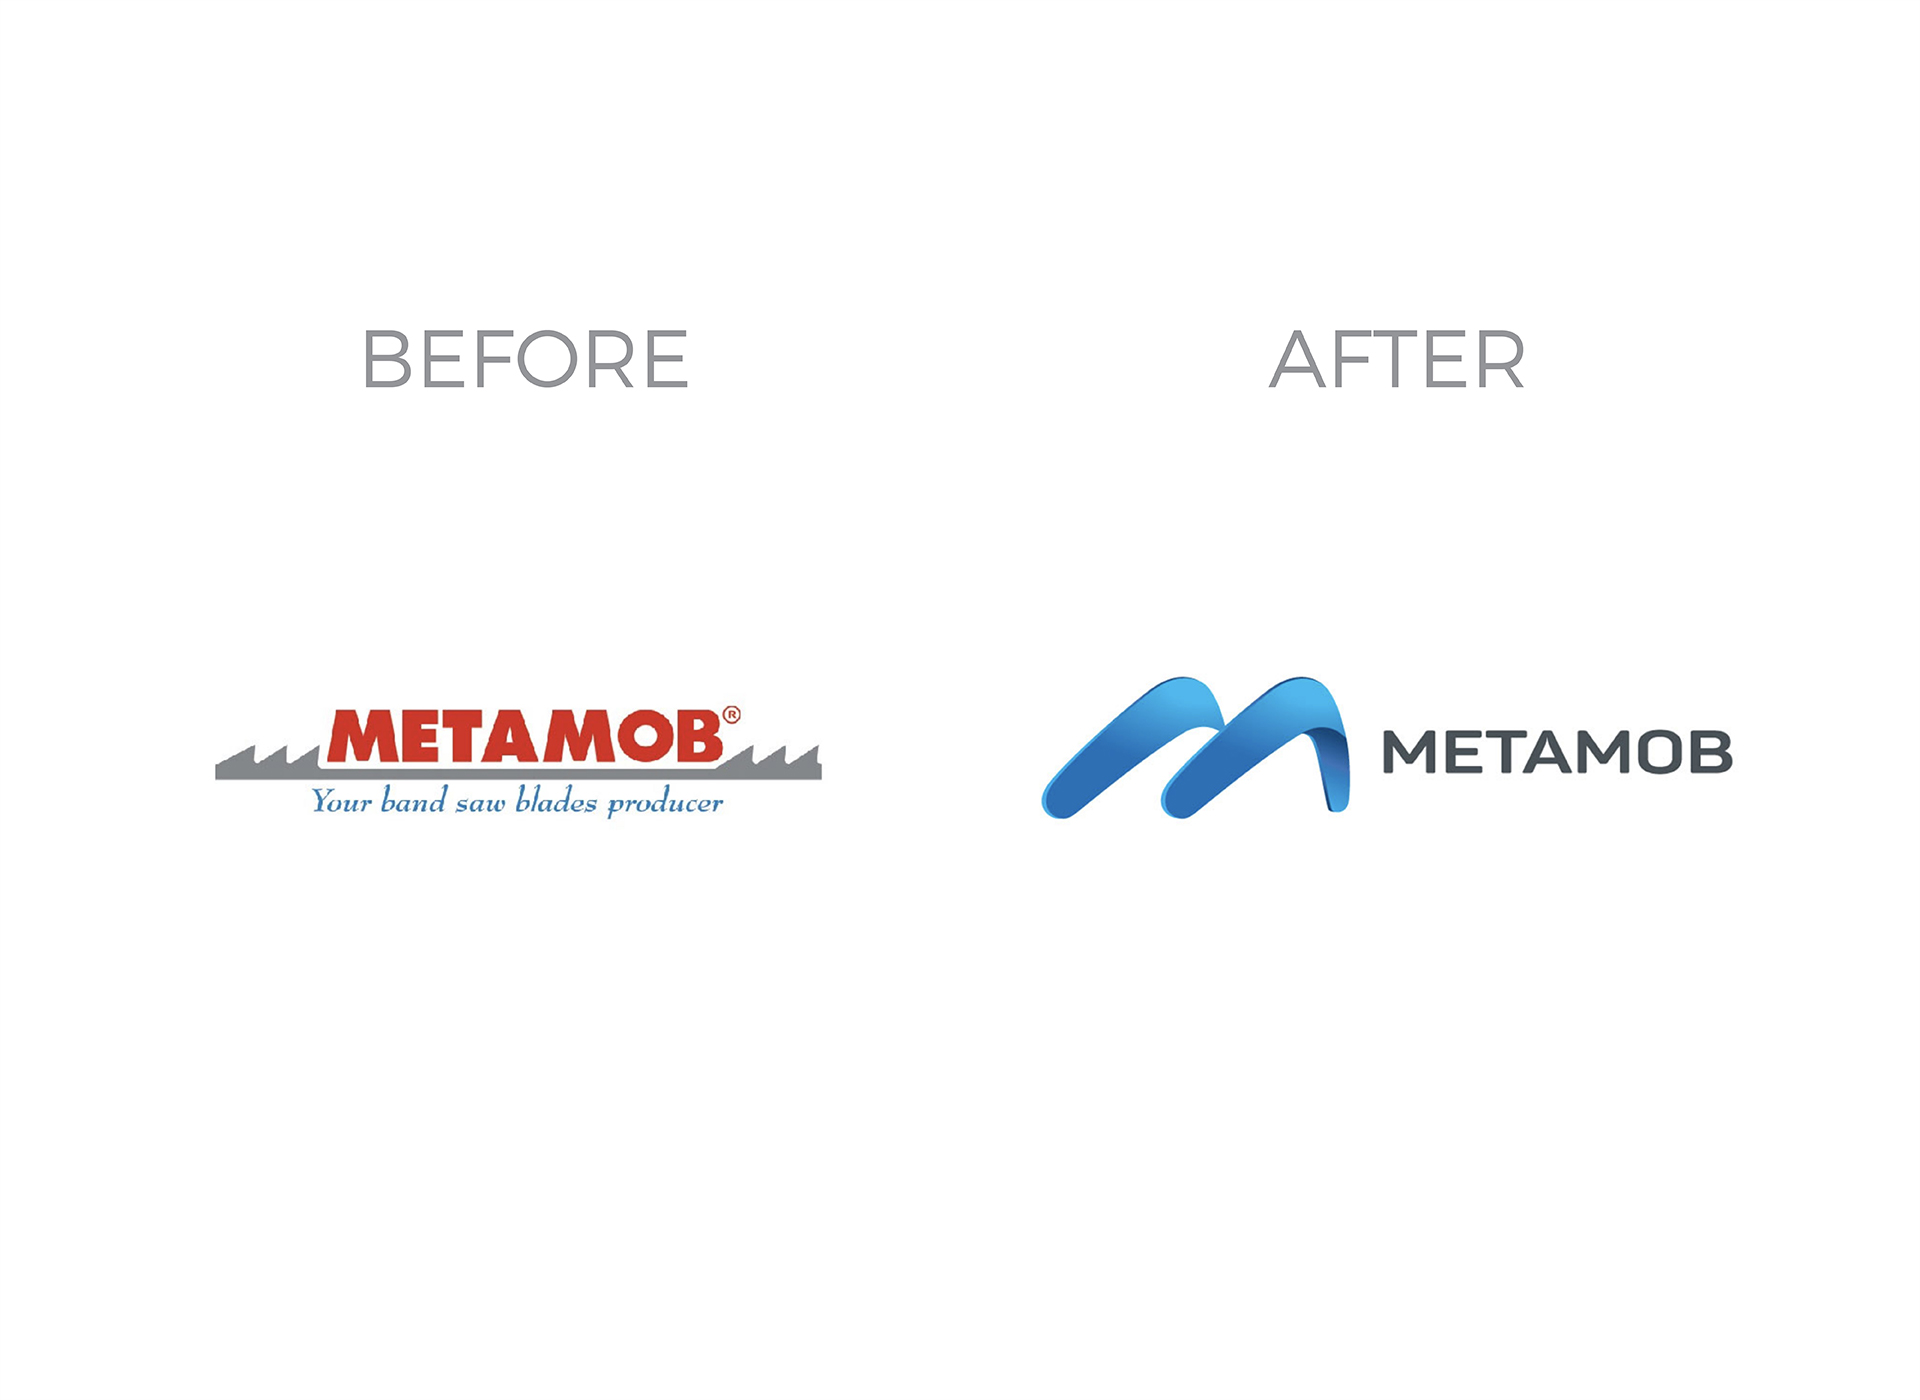 metamob portofoliu before rebranding